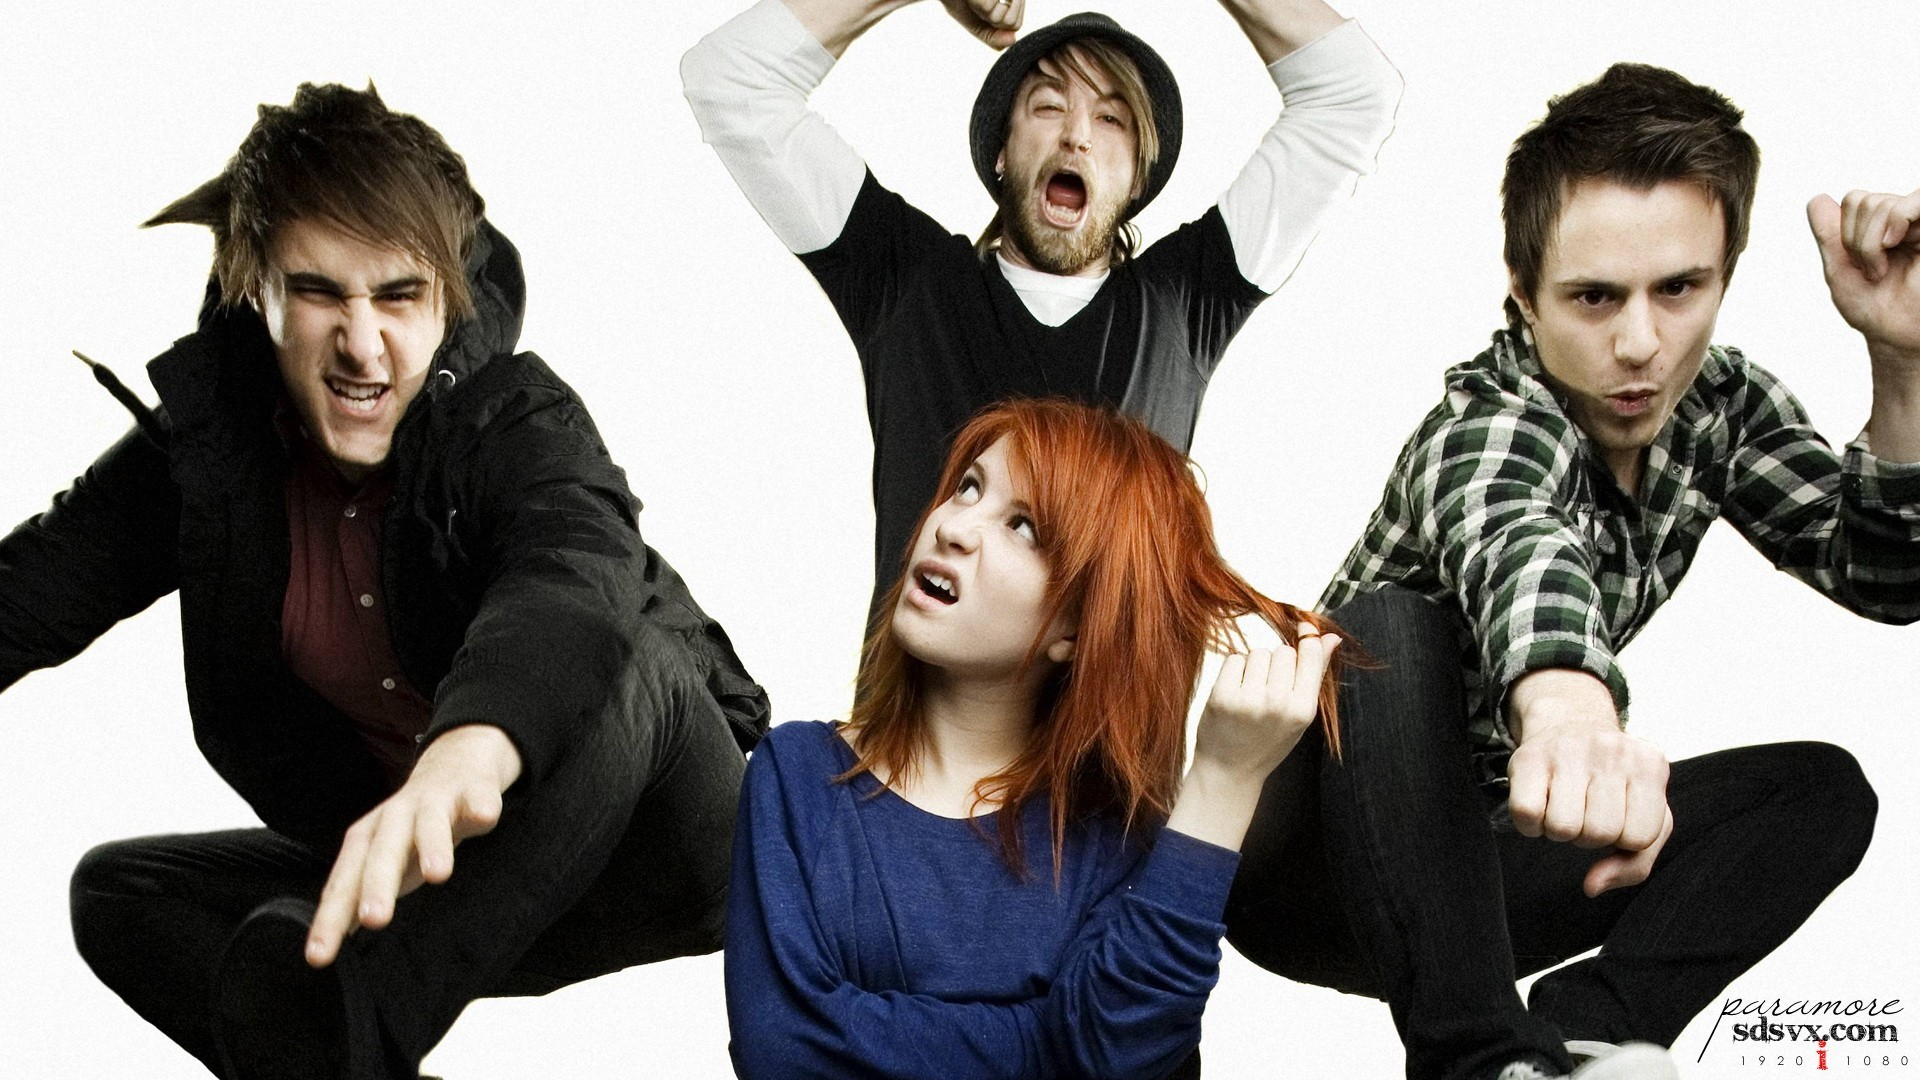 1920x1080 Paramore images aaa HD wallpaper and background photos